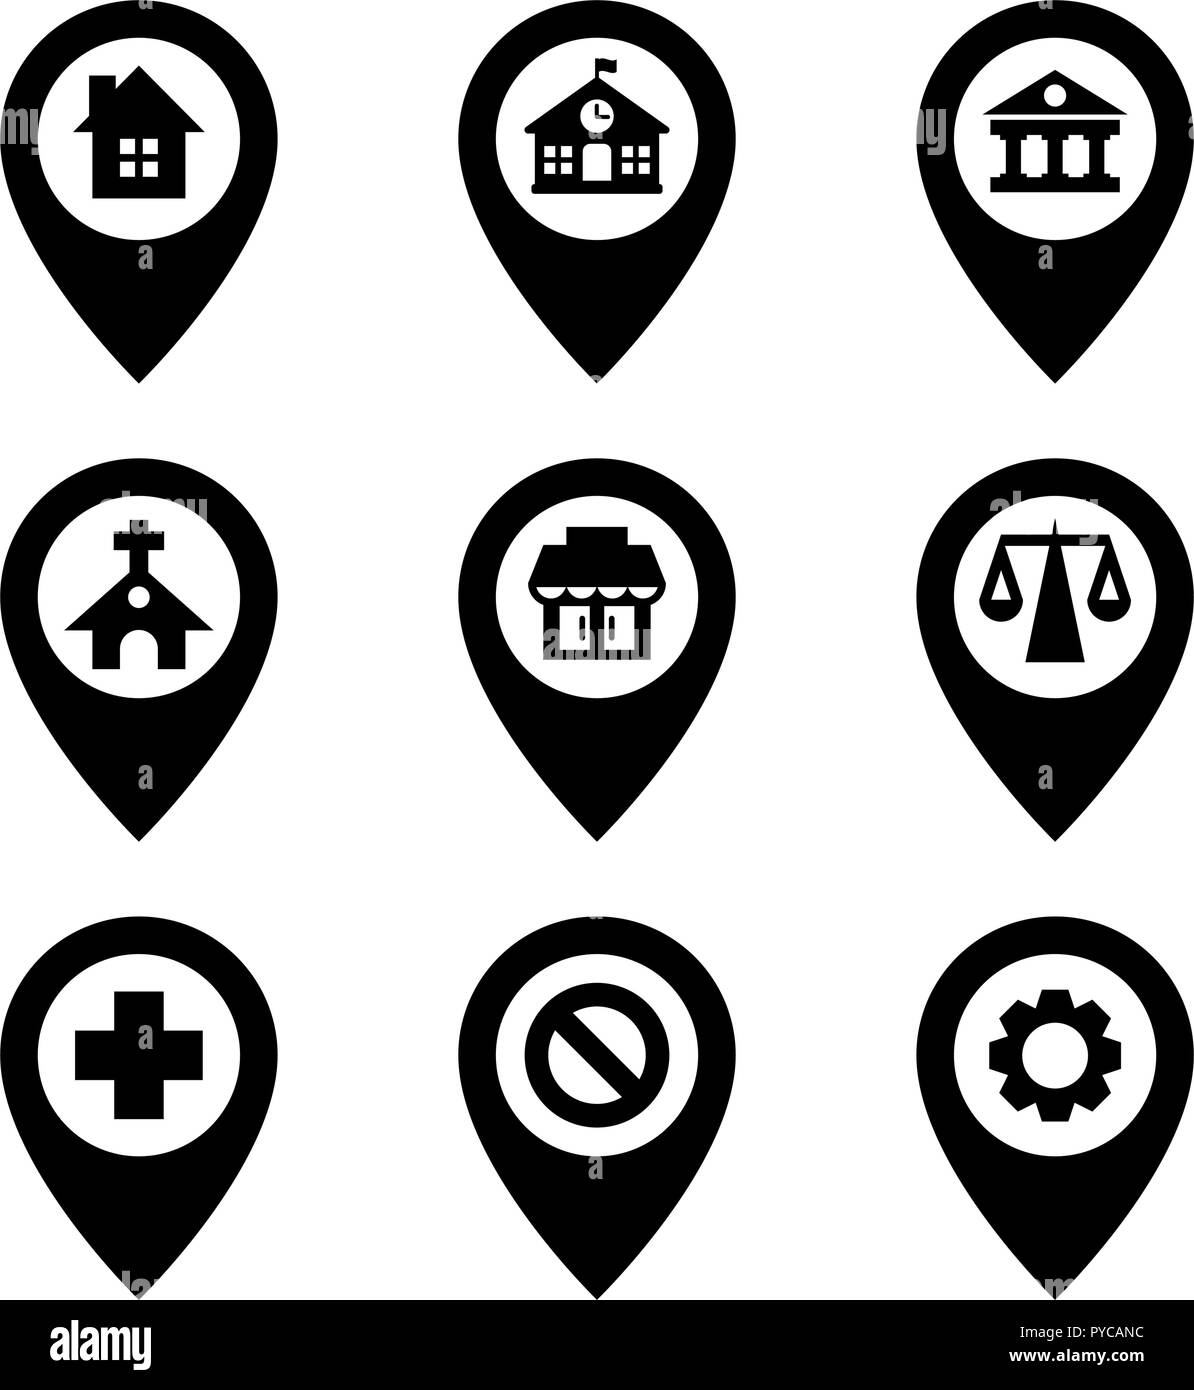 Map Pins City Places - Stock Image